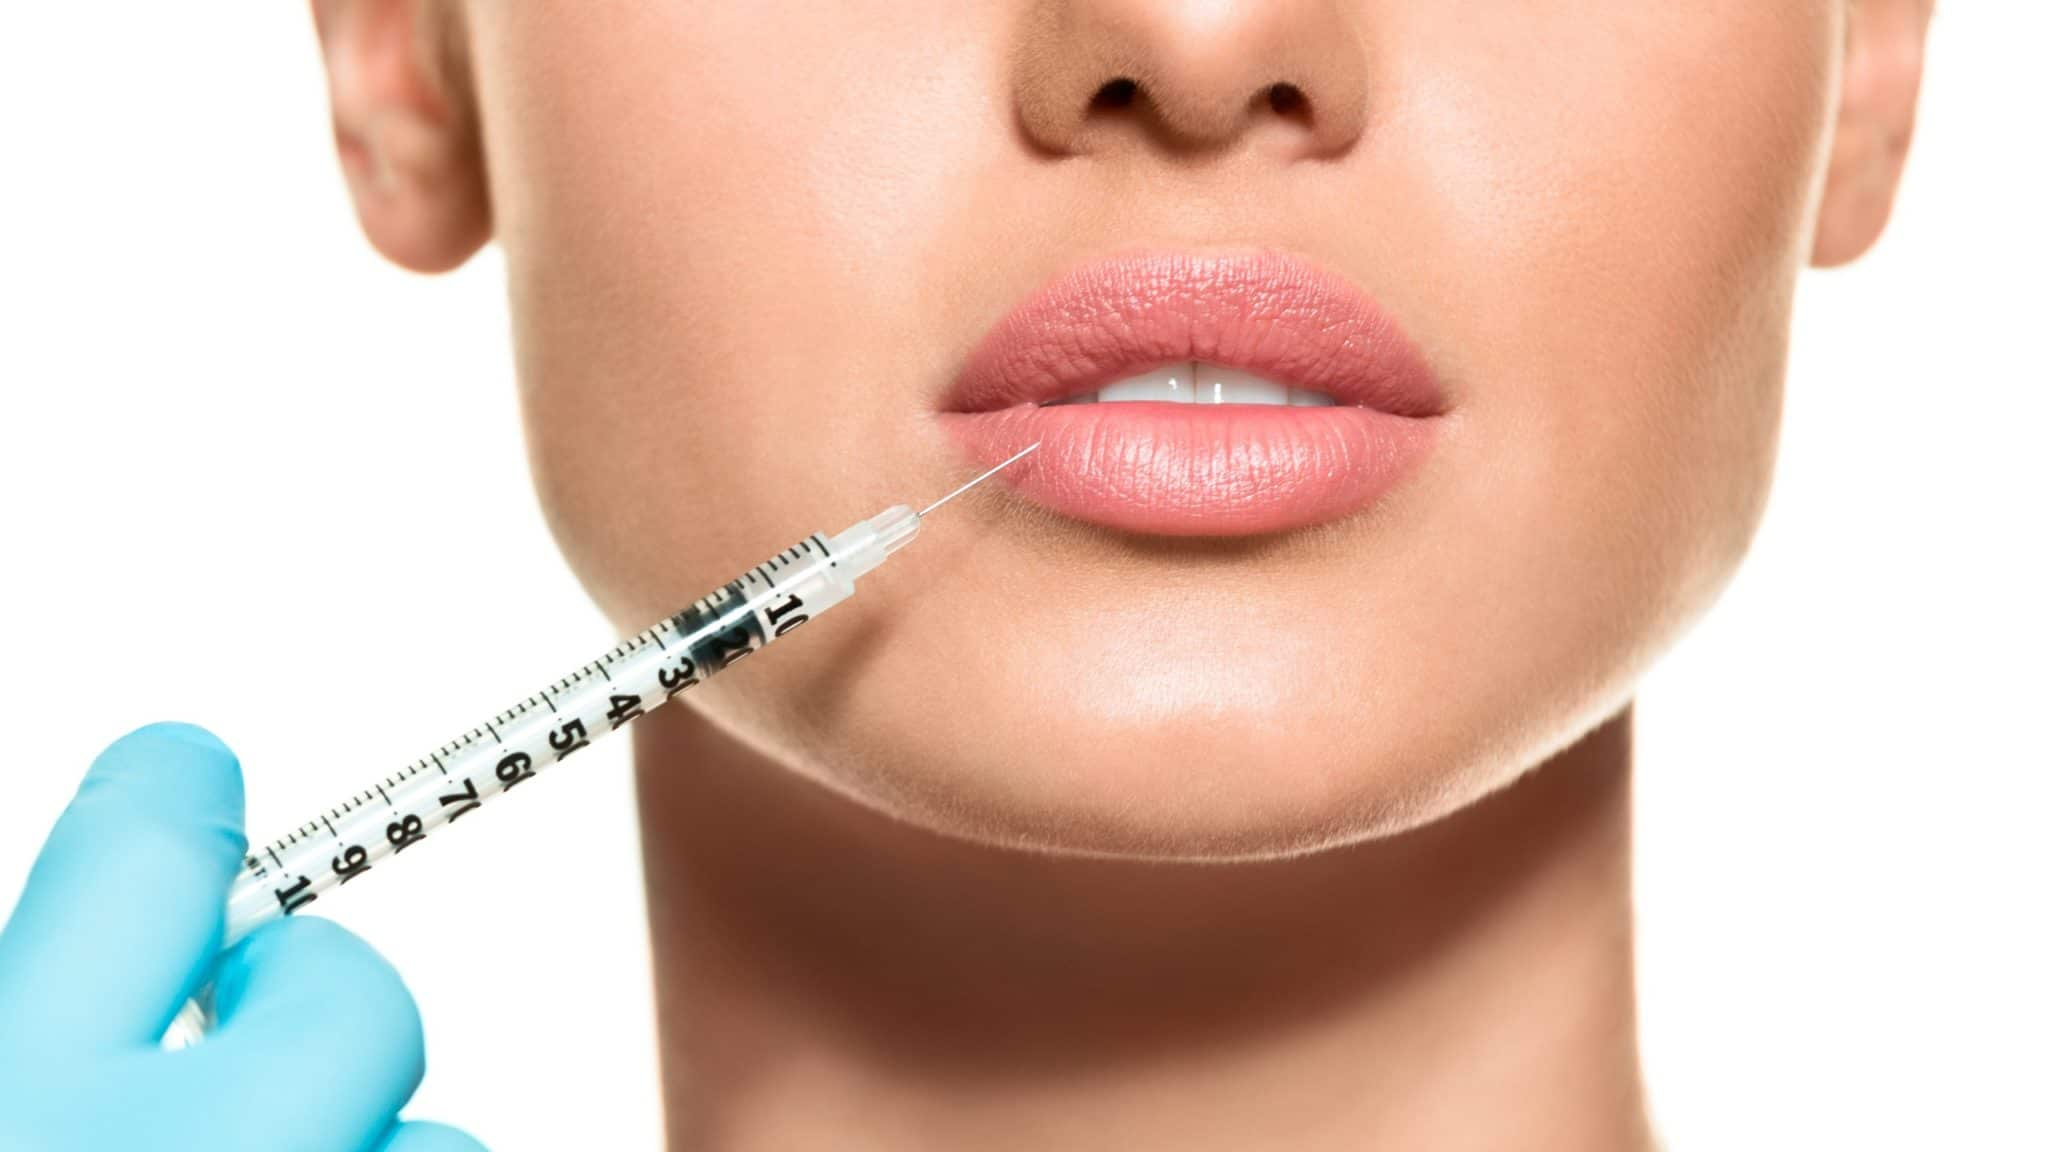 Lady receiving lip filler injection